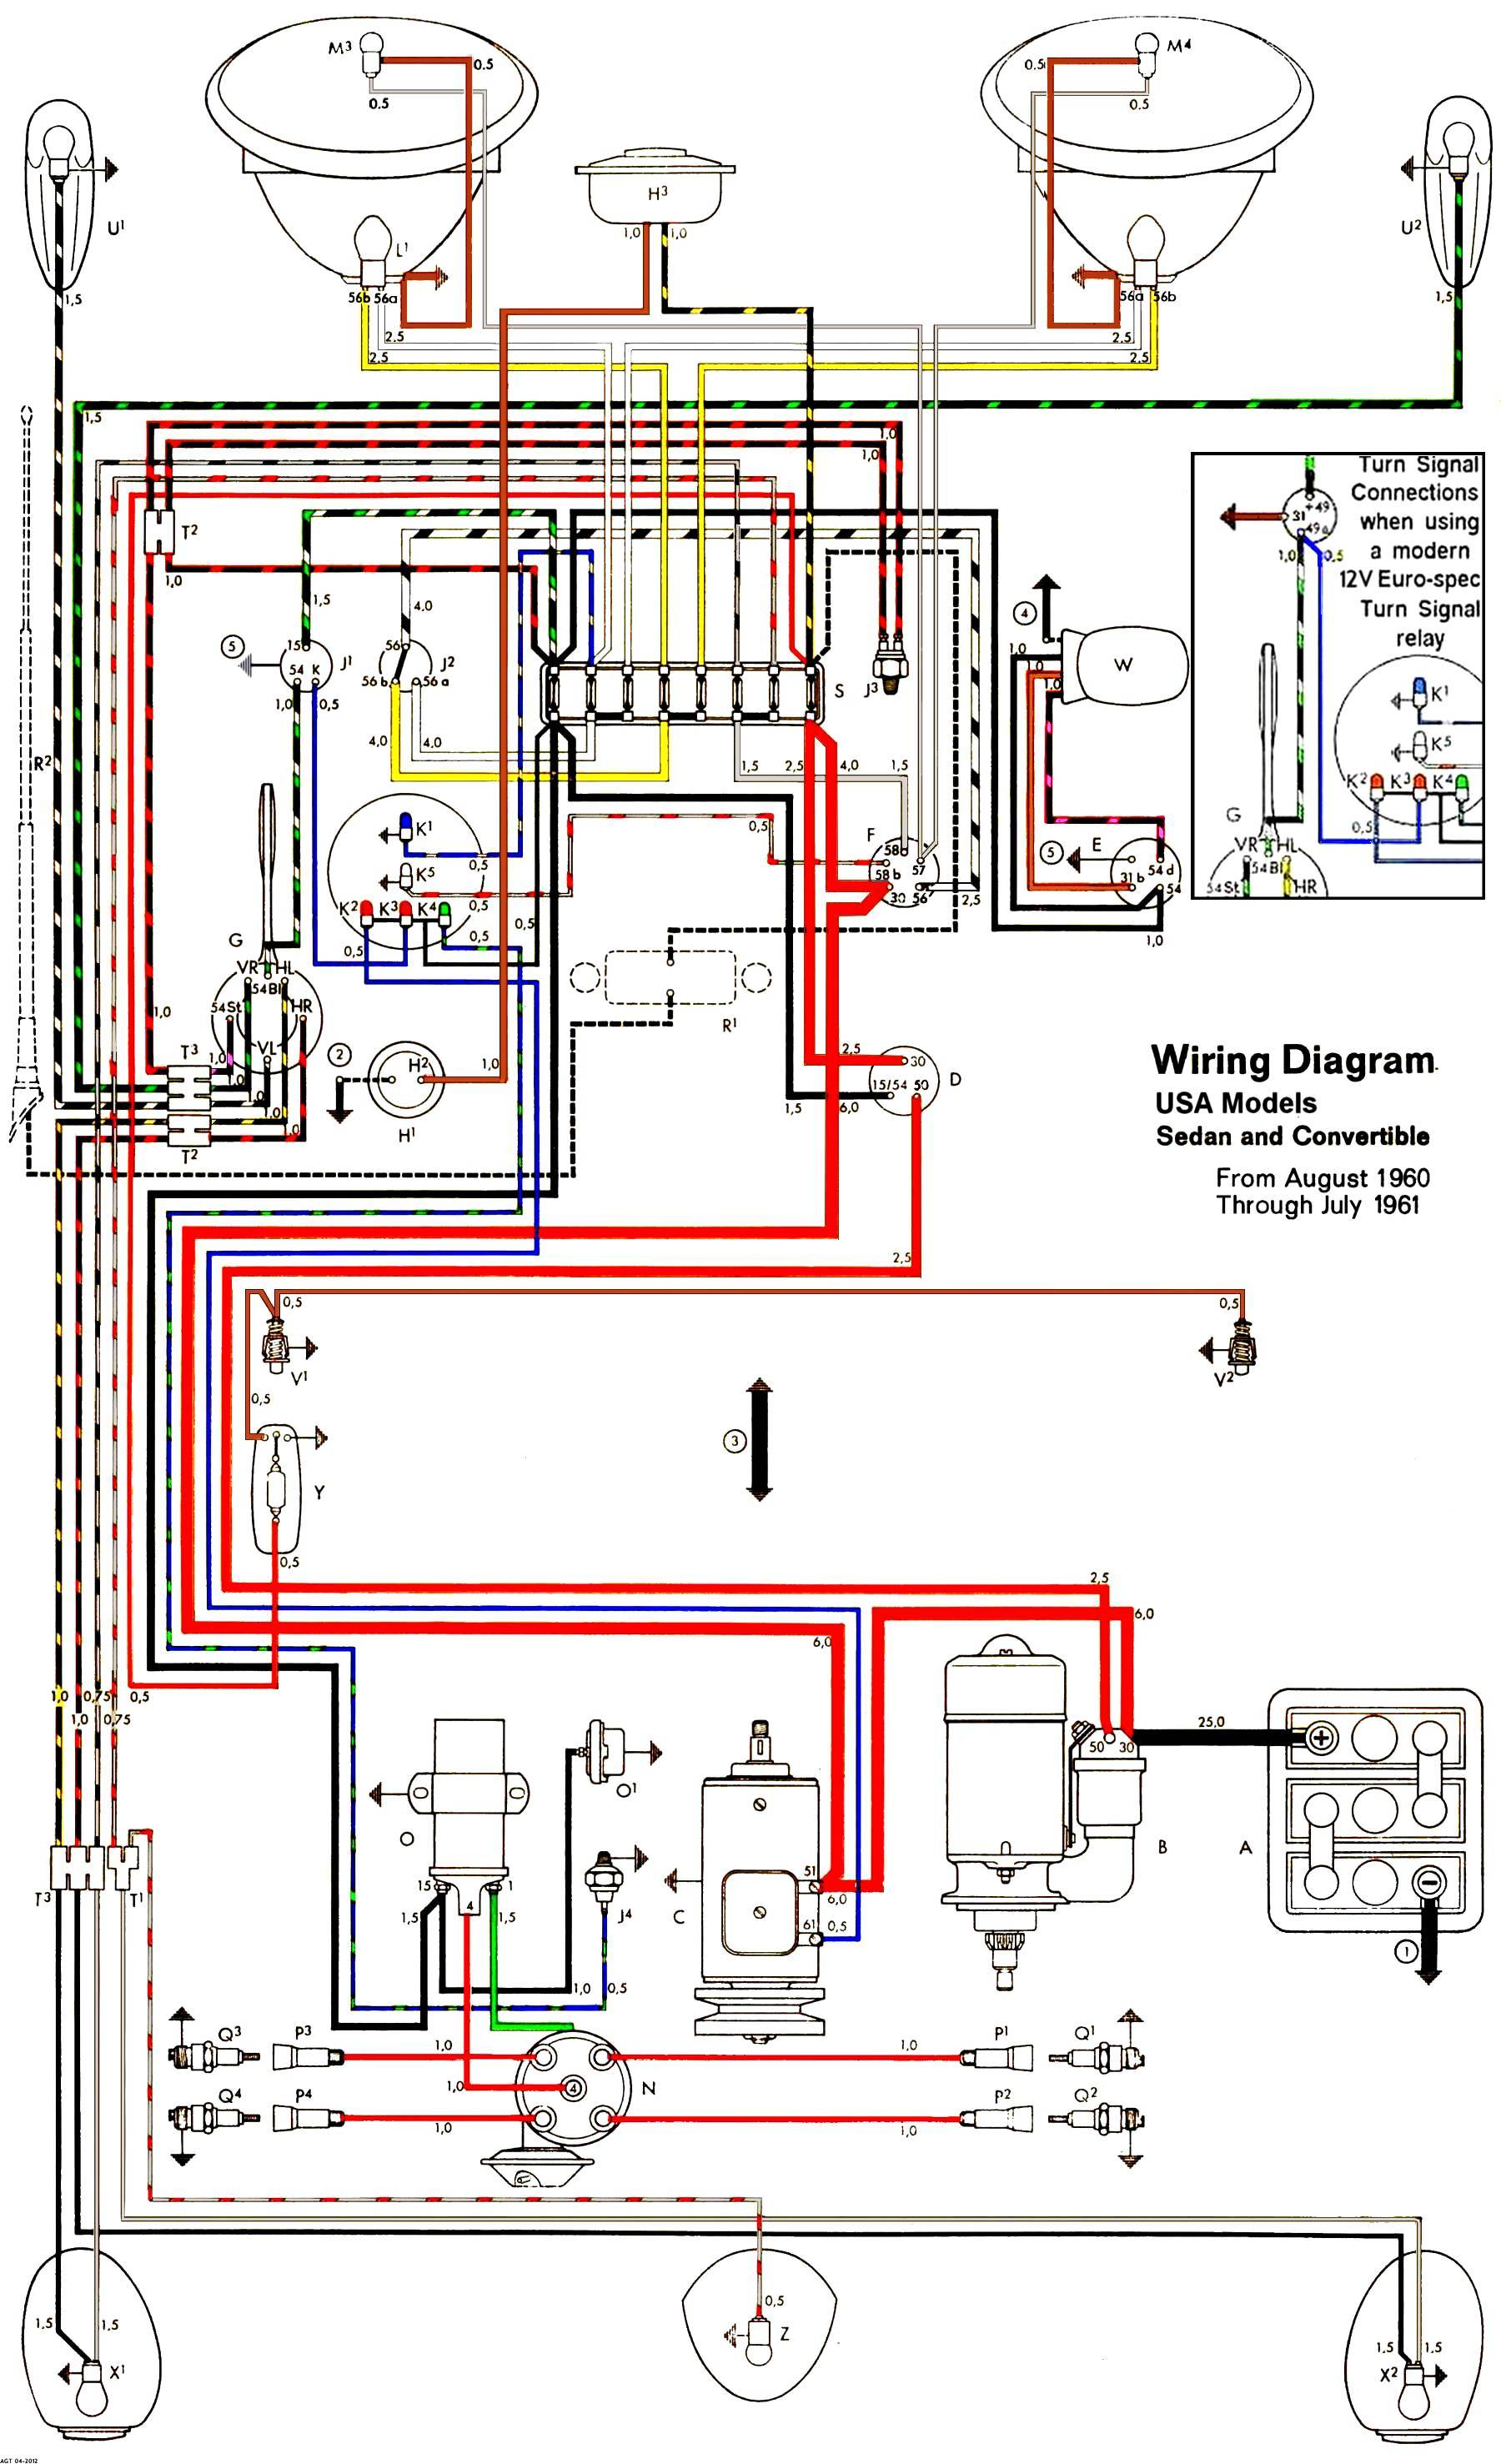 1969 vw squareback wiring diagram schematic 1969 vw beetle wiring diagram